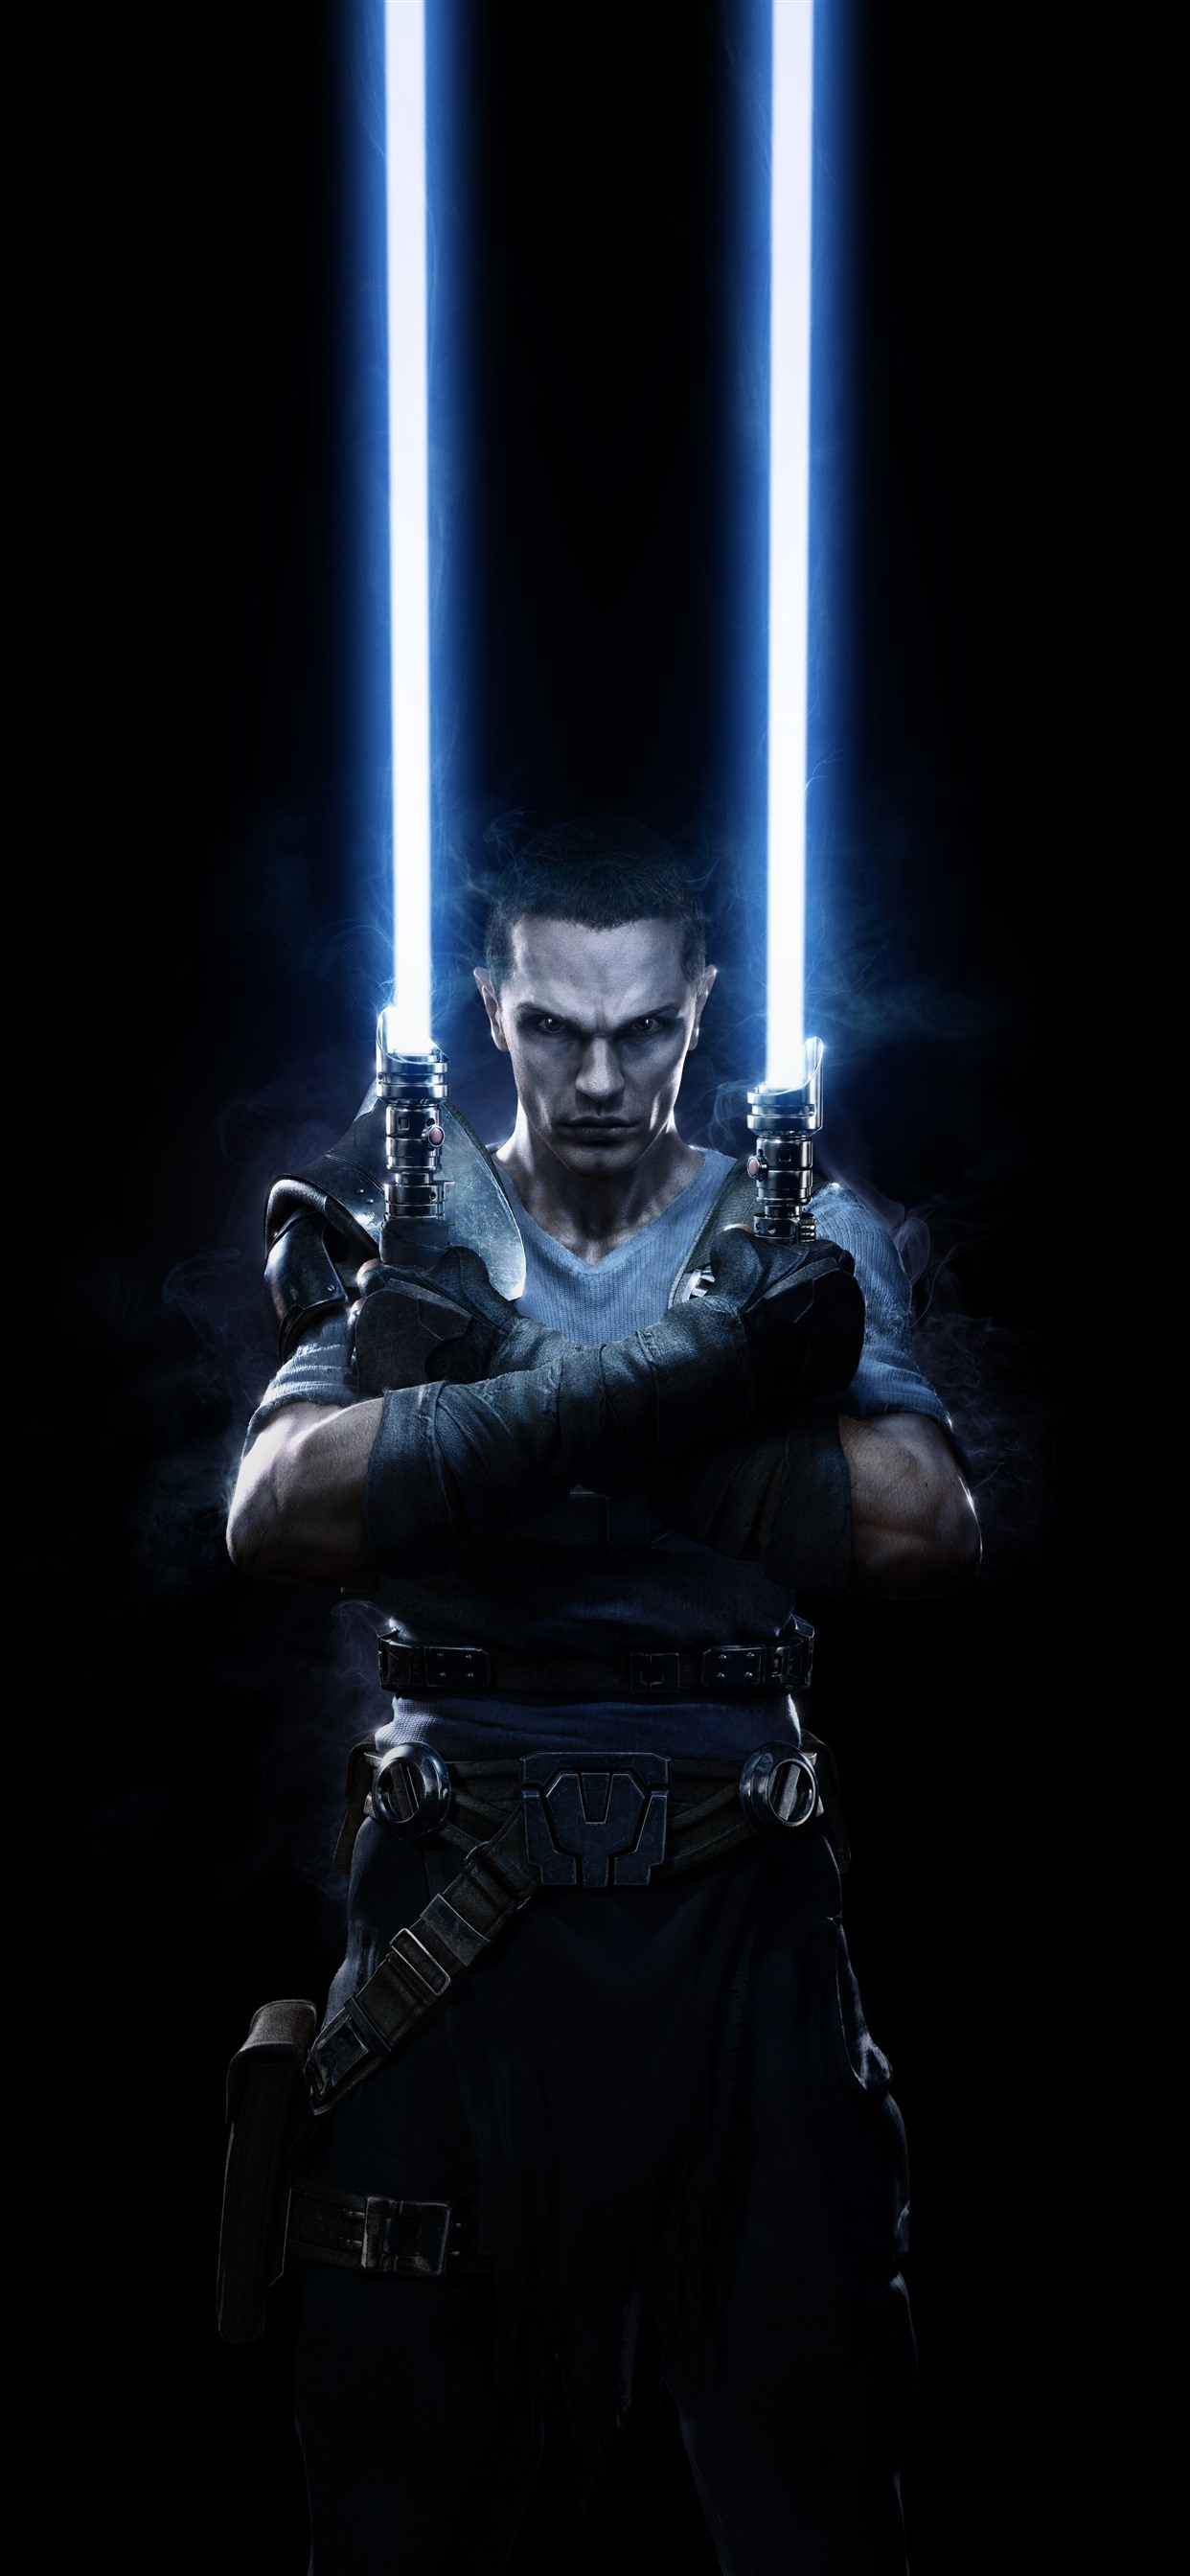 Wallpaper Star Wars The Force Unleashed 2 5120x2880 Uhd 5k